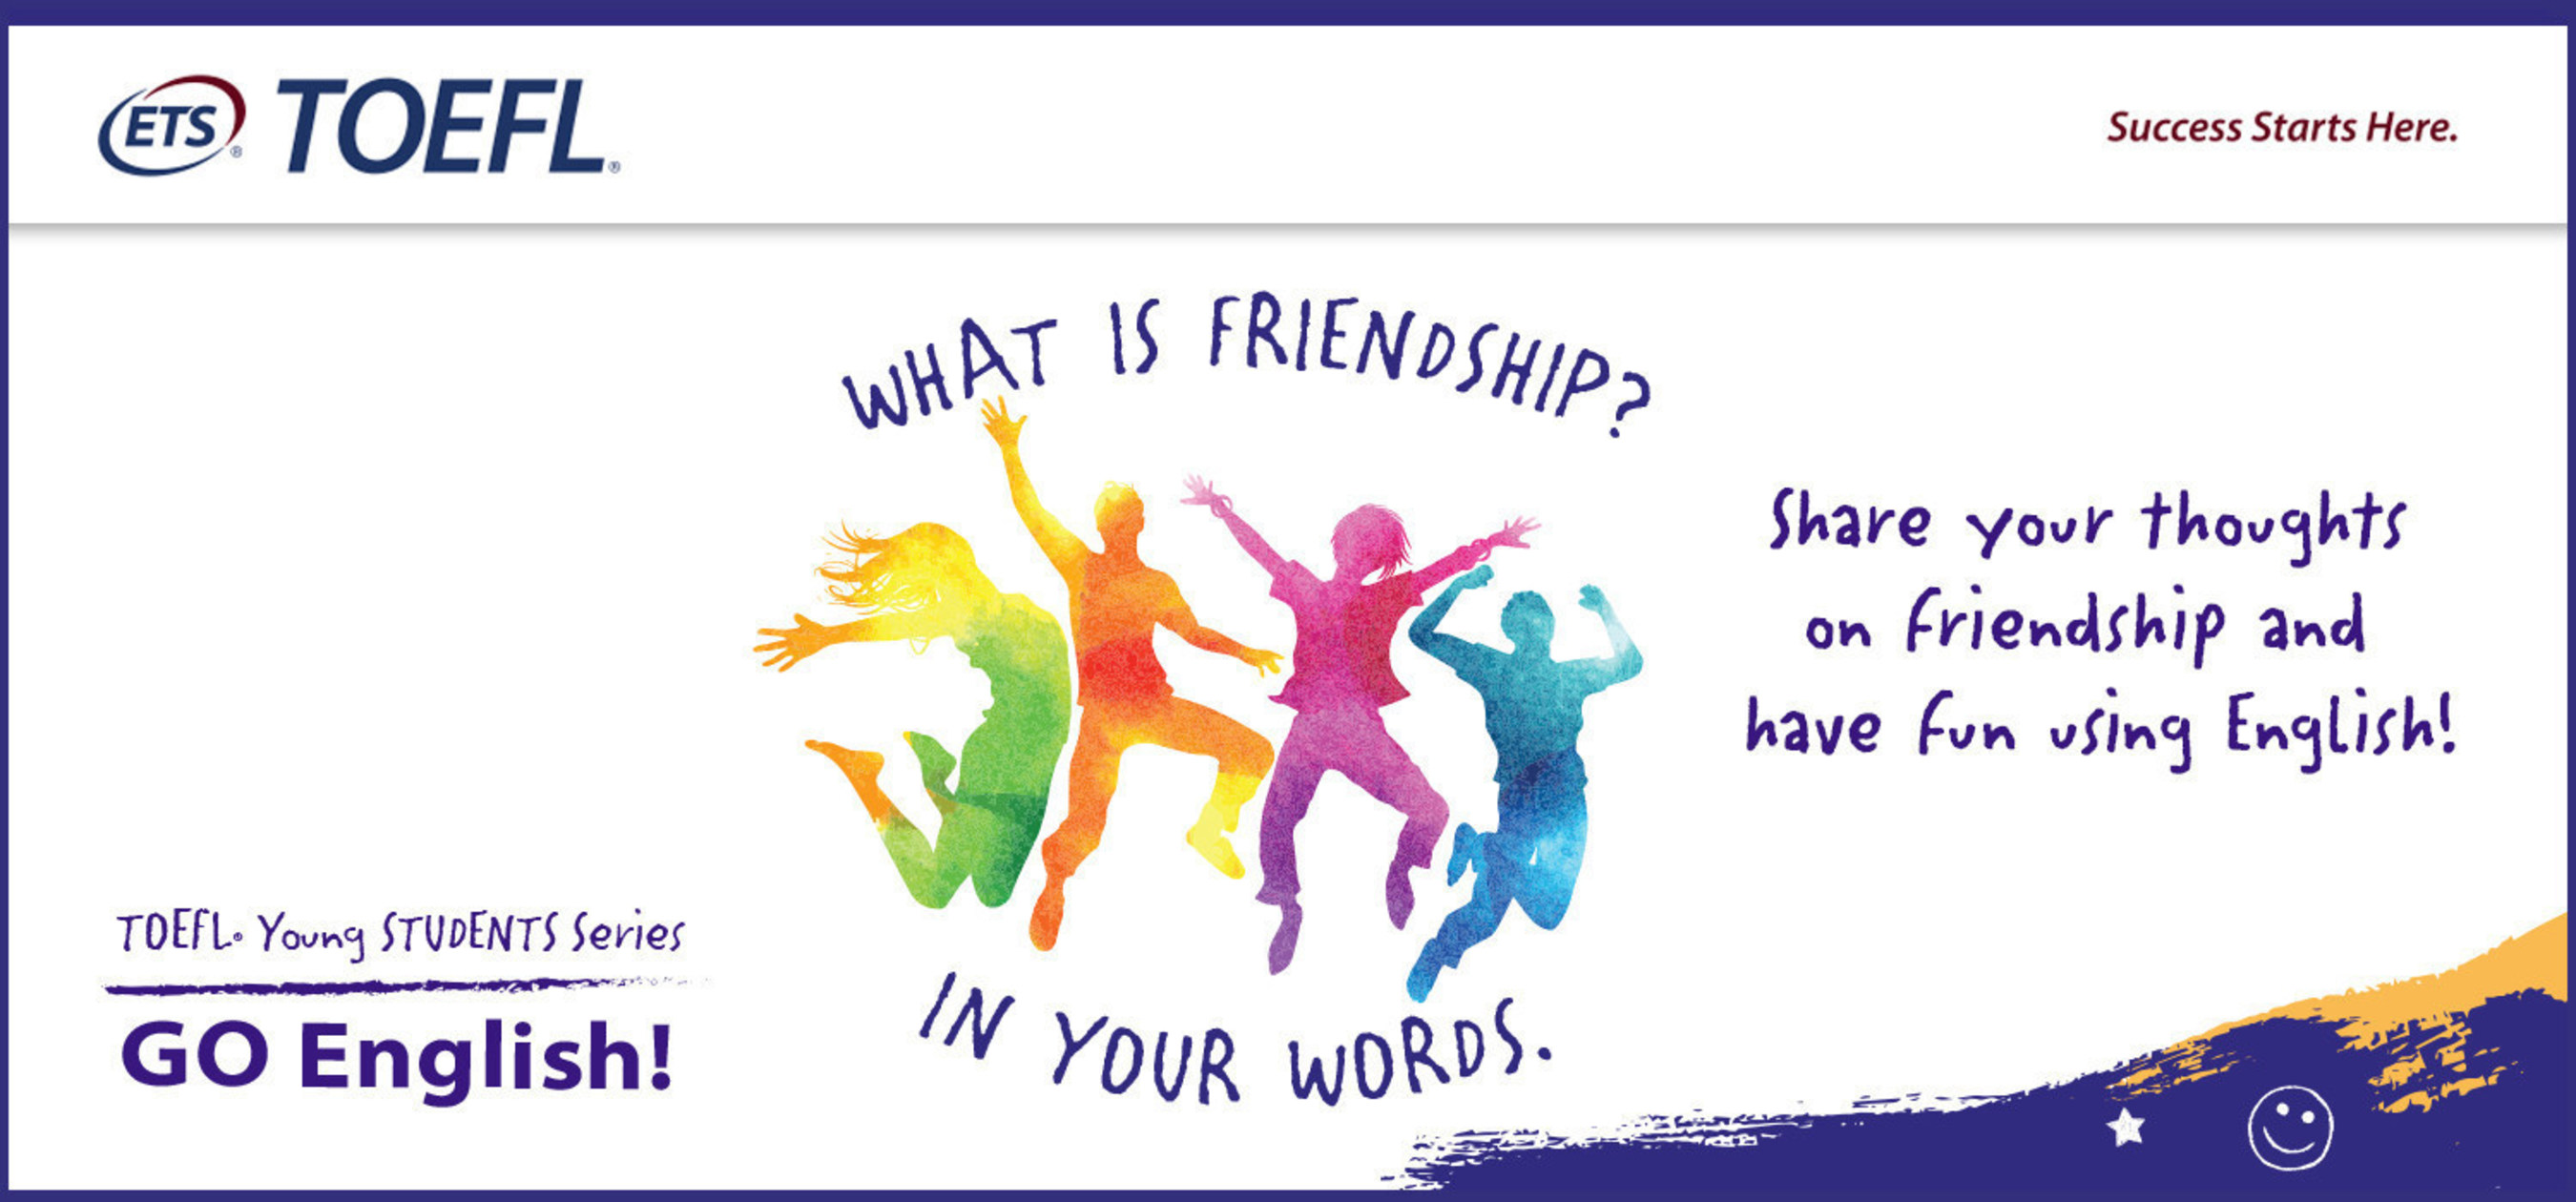 What does friendship mean to your students? We invite you to participate in the 2016-17 TOEFL(R) Young Students Series GO English! project by creating a video, radio, poster or newspaper announcement that tells us what friendship means to your students.